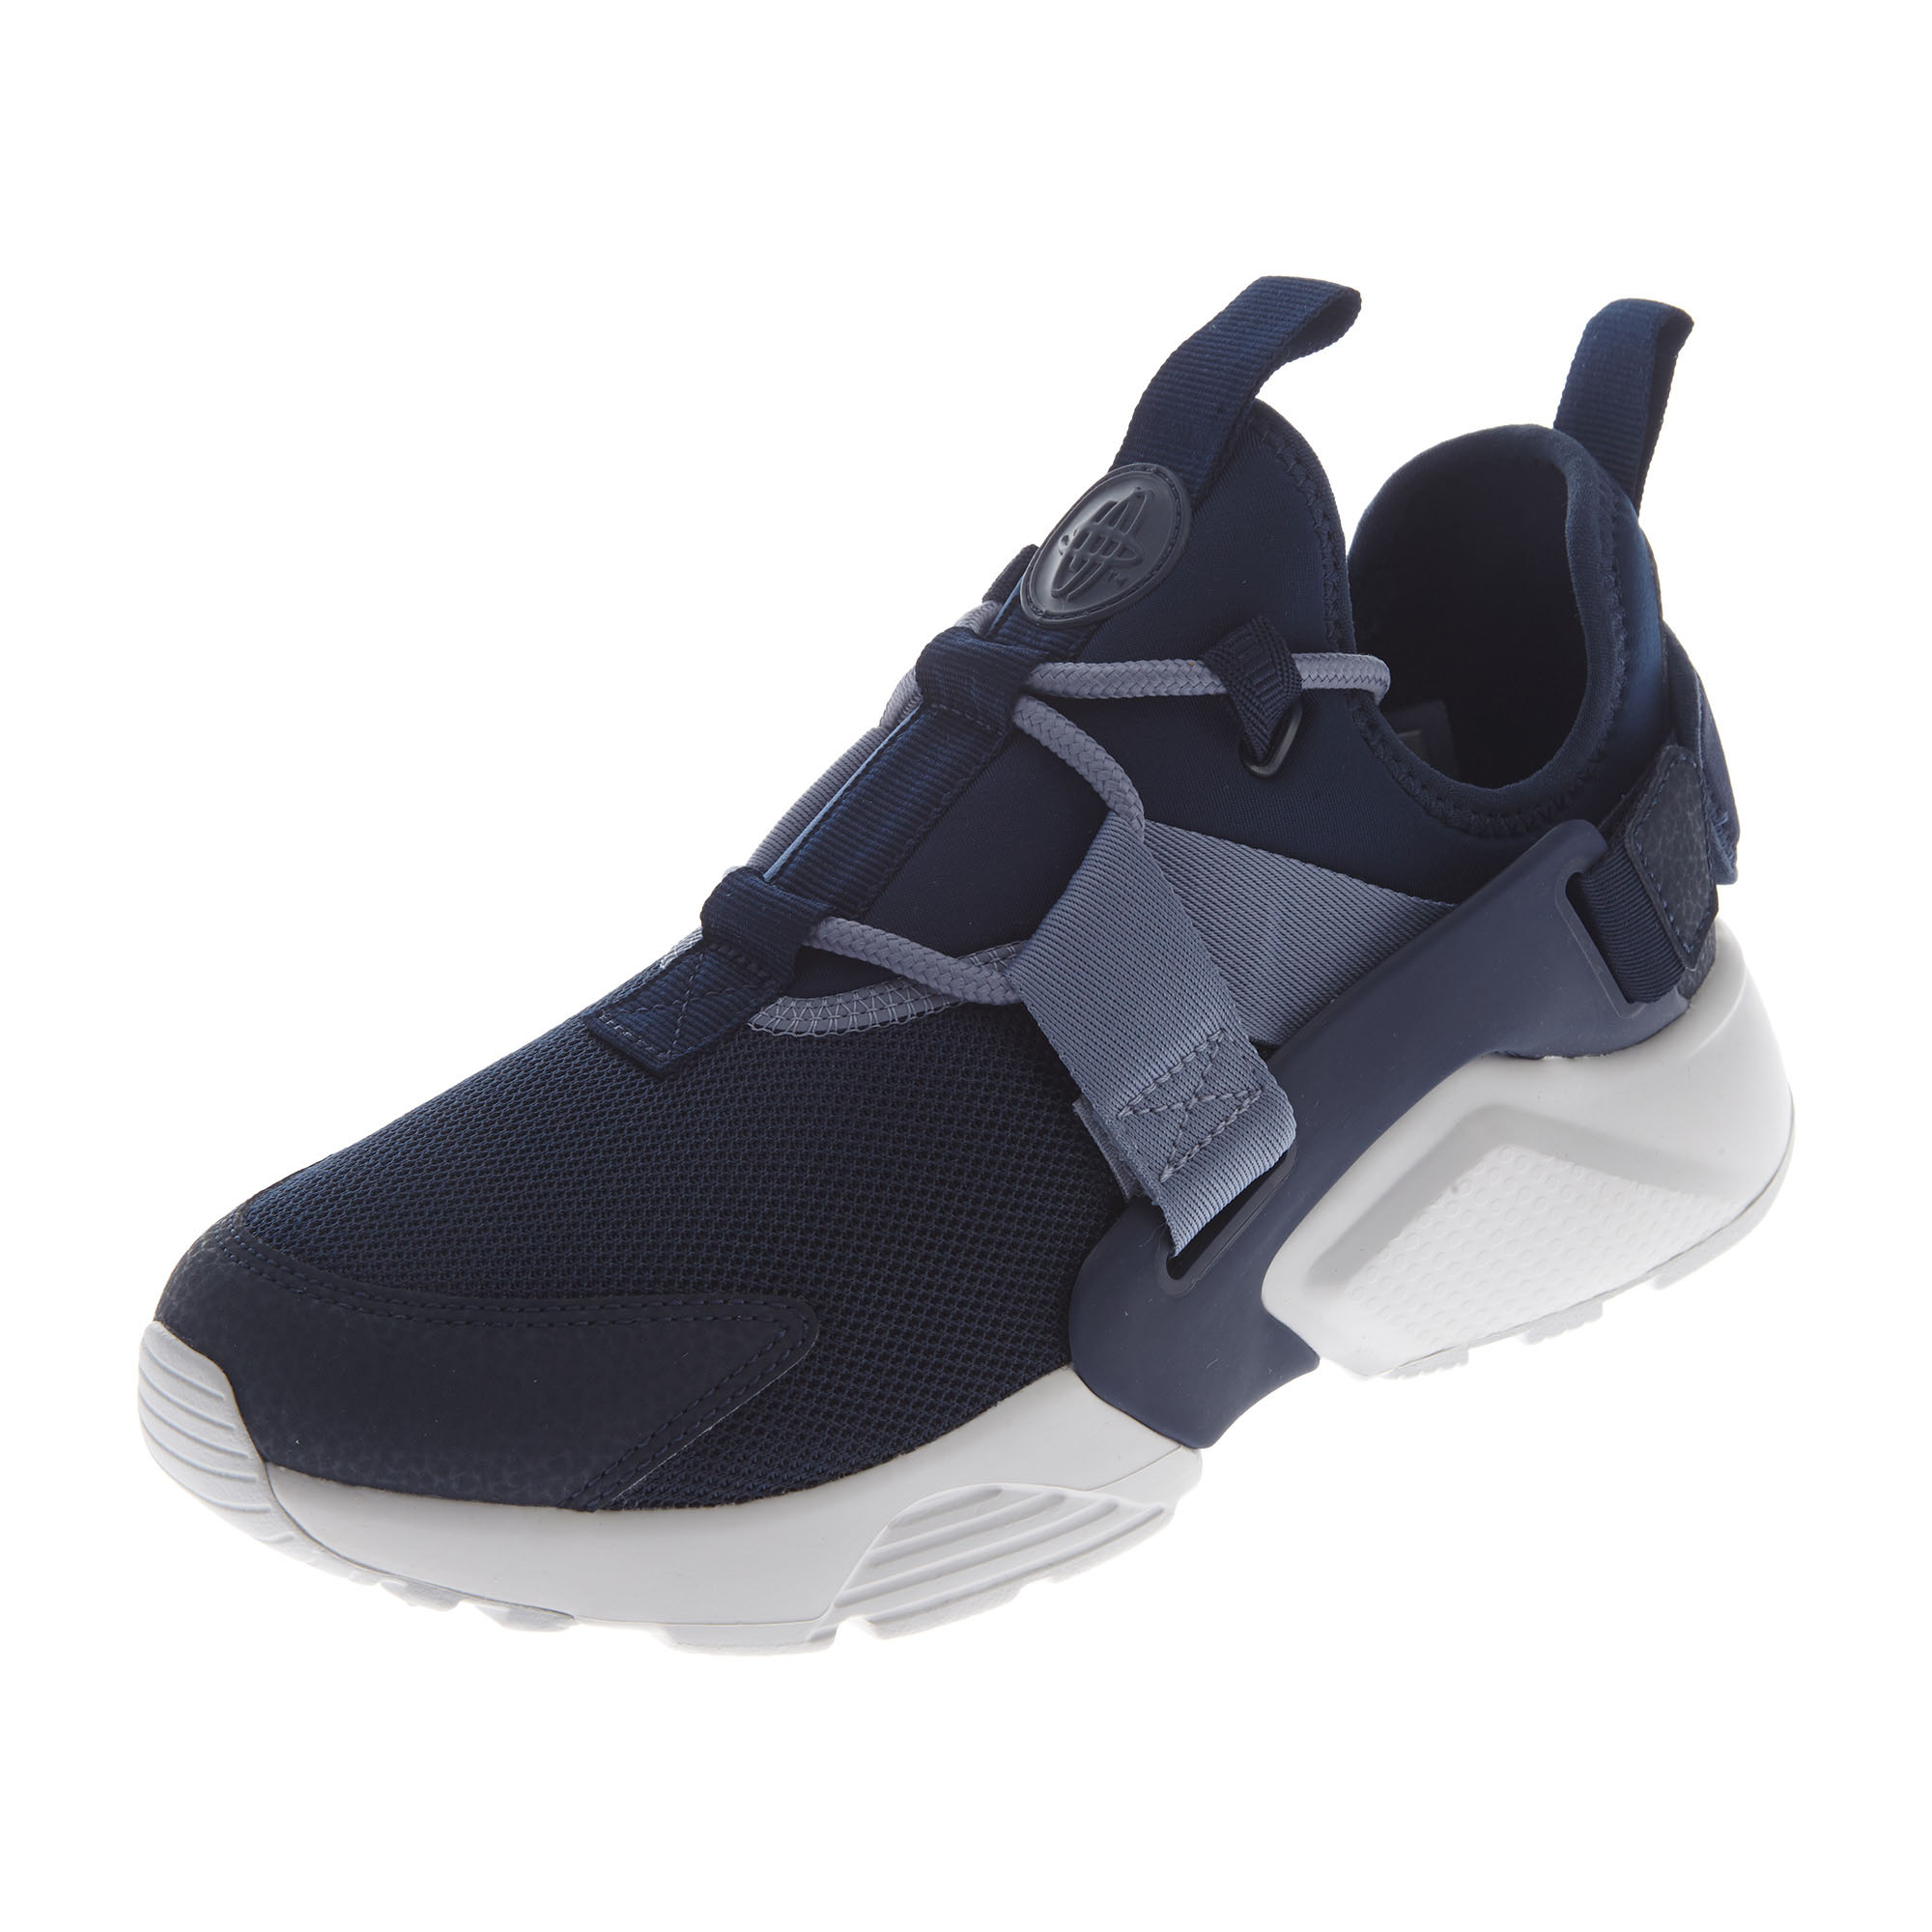 363b13efaa42 Details about Nike Womens Air Huarache City Low Sneakers AH6804-402